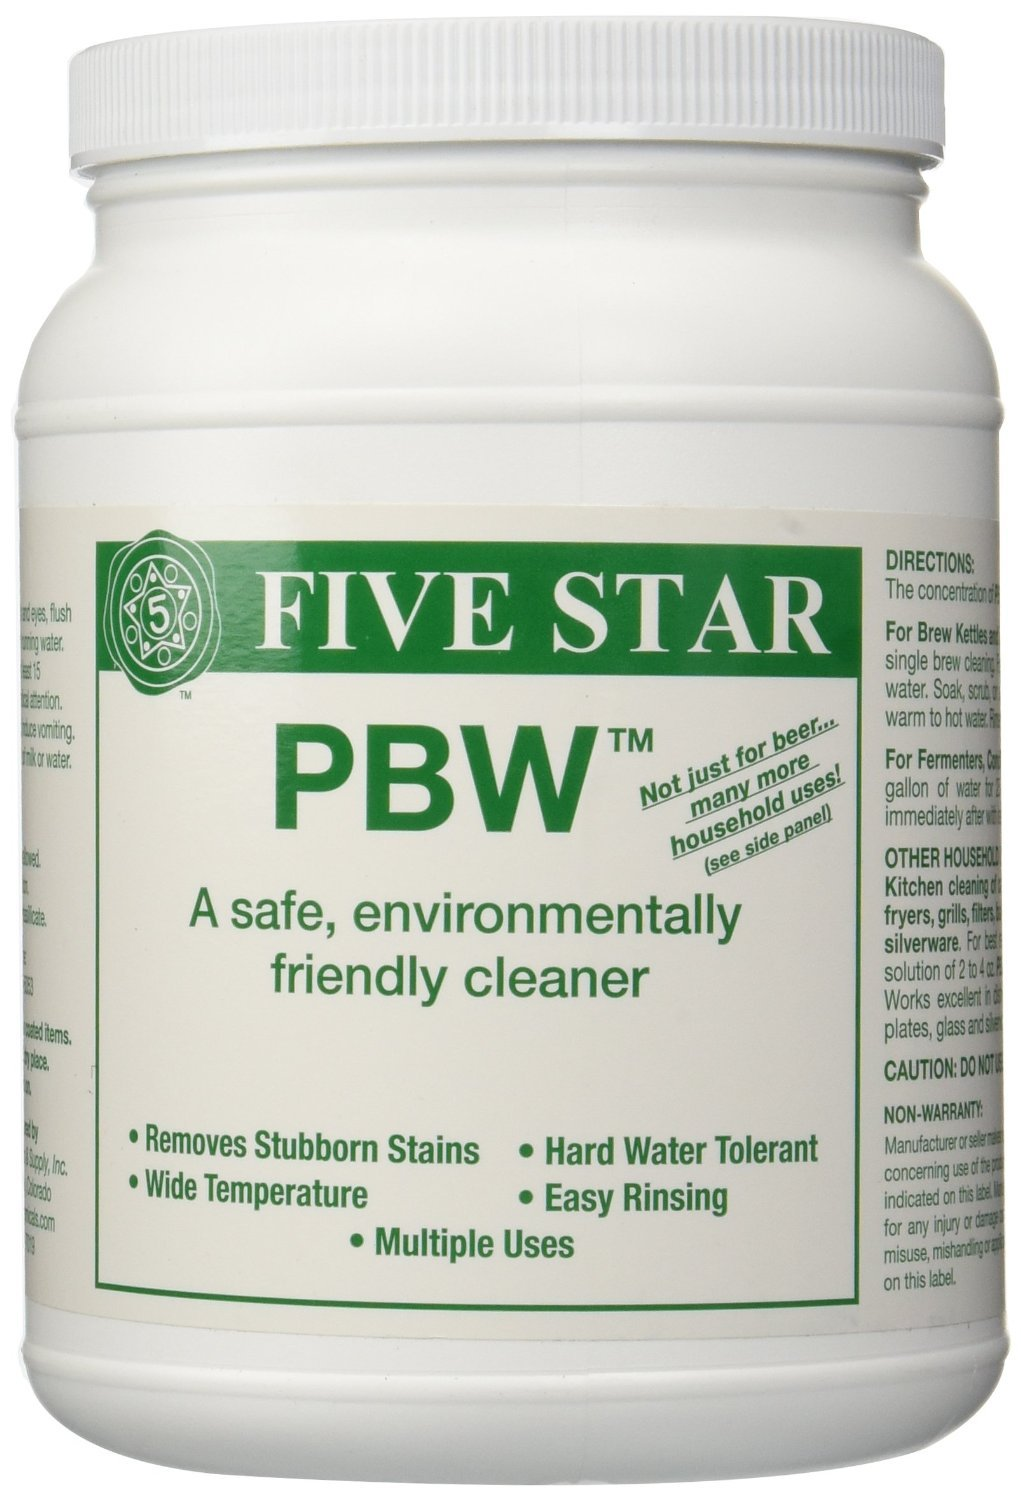 Five Star PBW Cleaner (Powdered Brewery Wash), 4-Pound Jar by Five Star (Image #1)